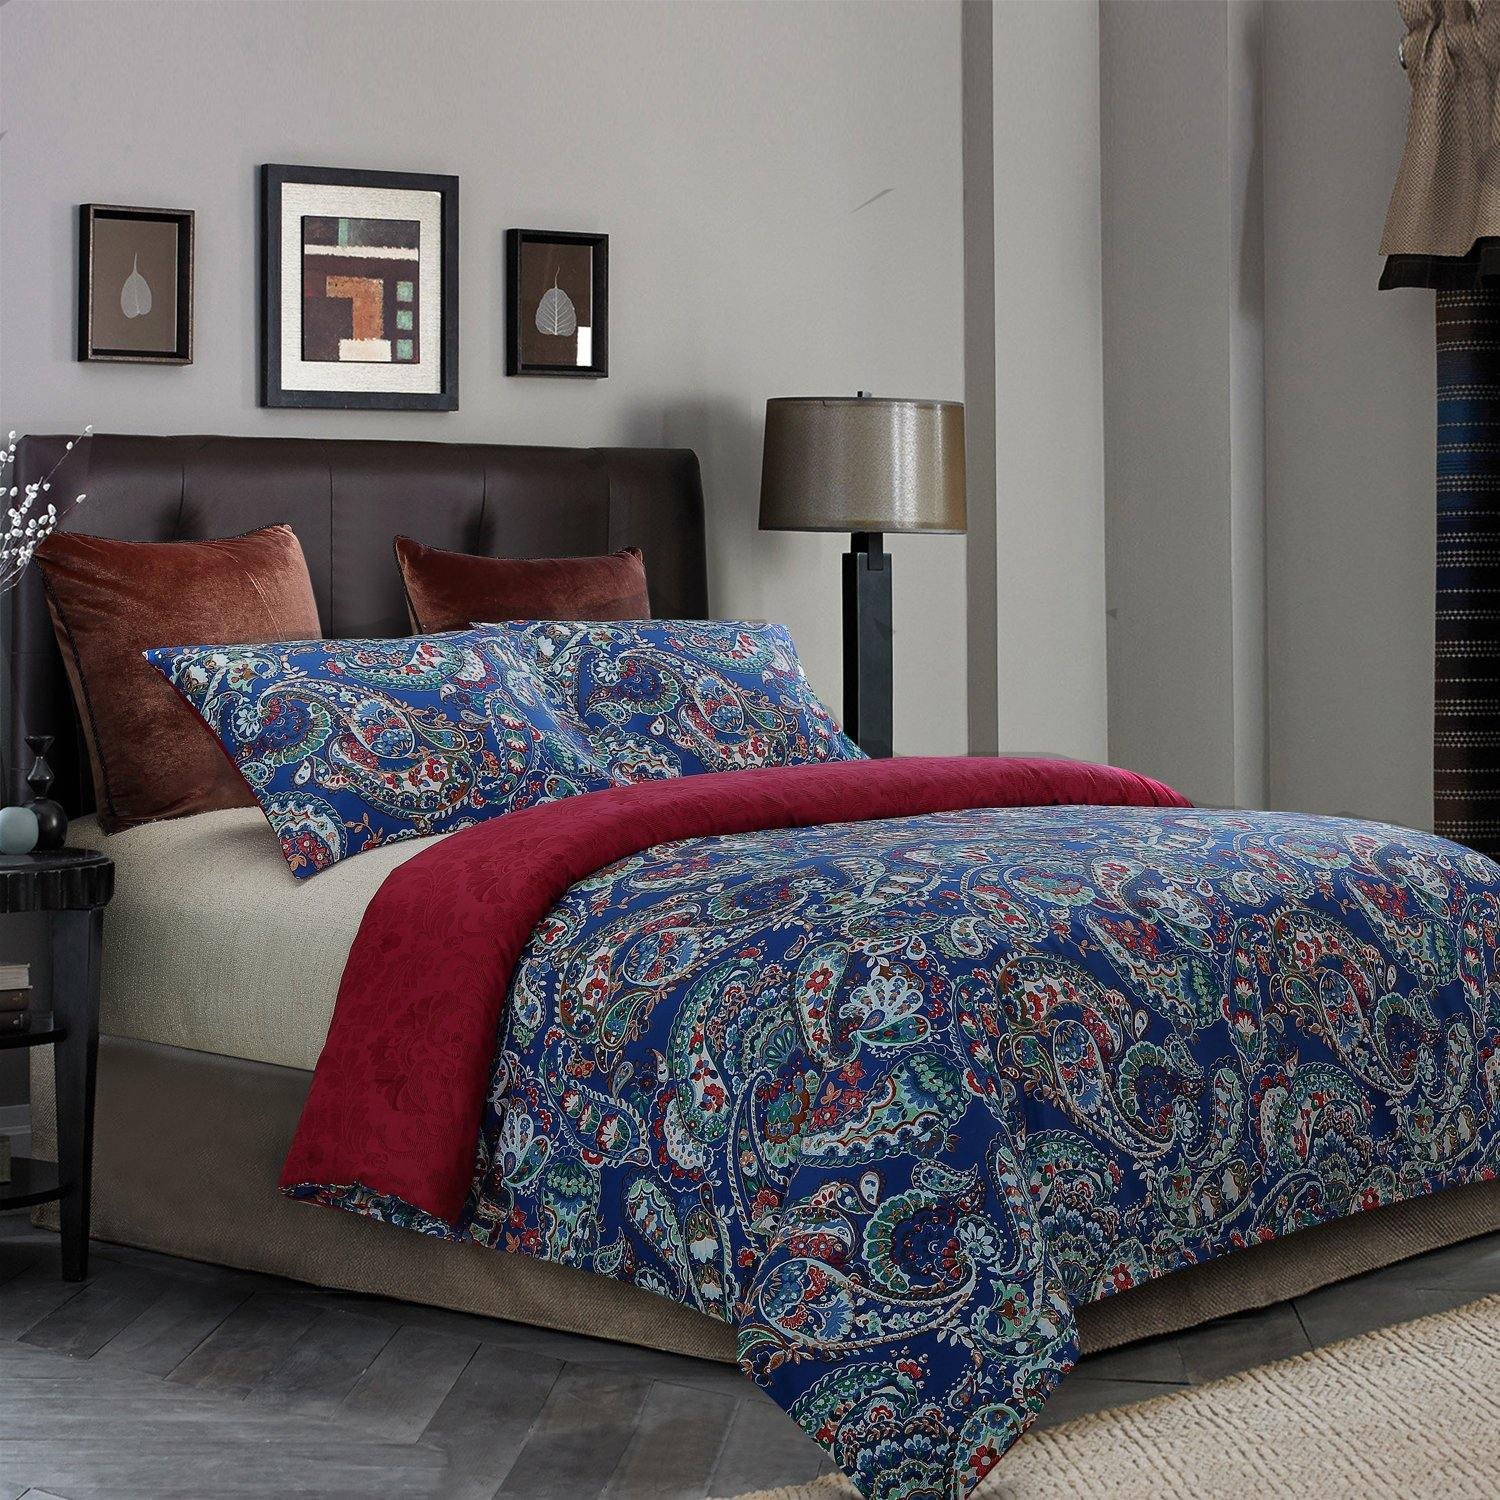 NTBAY 3 Pieces Duvet Cover Set Brushed Microfiber Printed Pattern Reversible Design - NTBAY